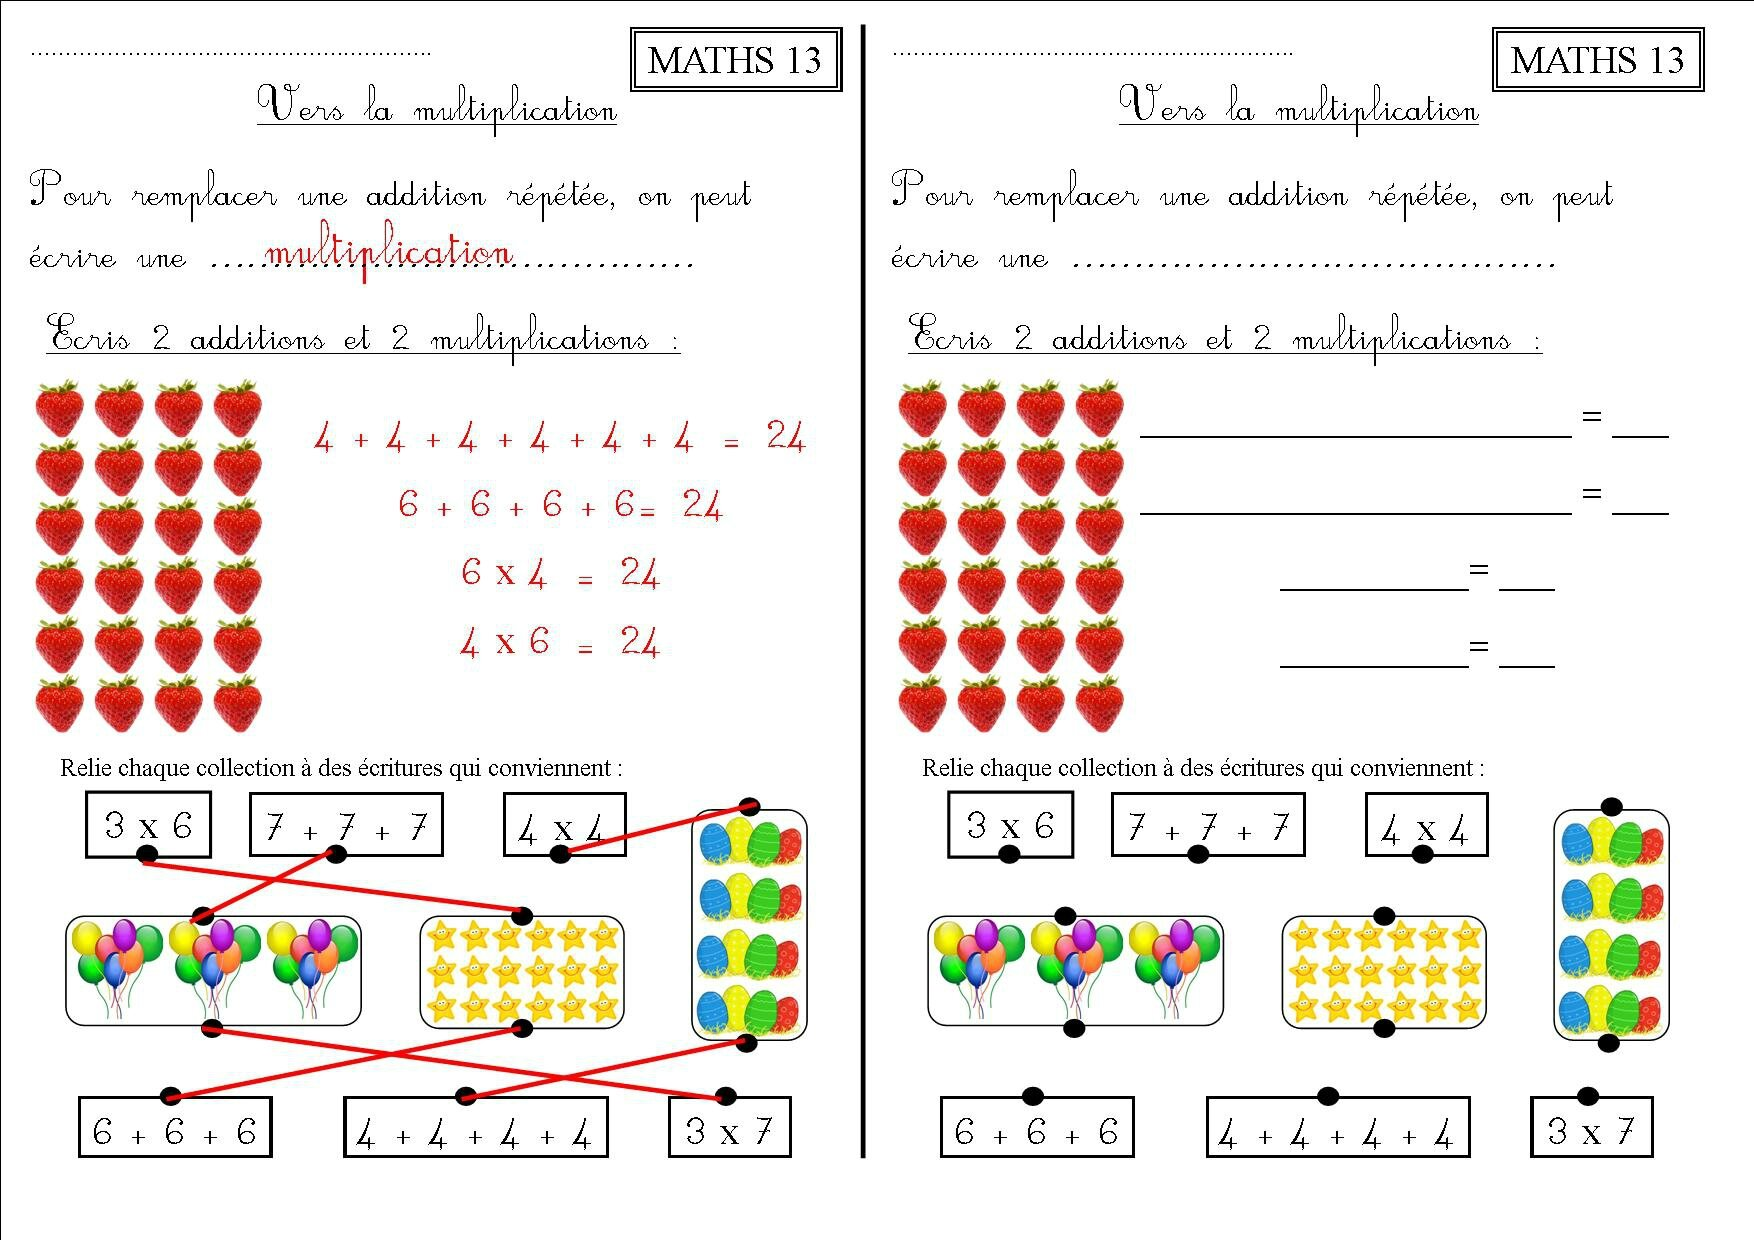 Maths 13 ce1 vers la multiplication la classe des ce de villebois - Exercices tables multiplication ...